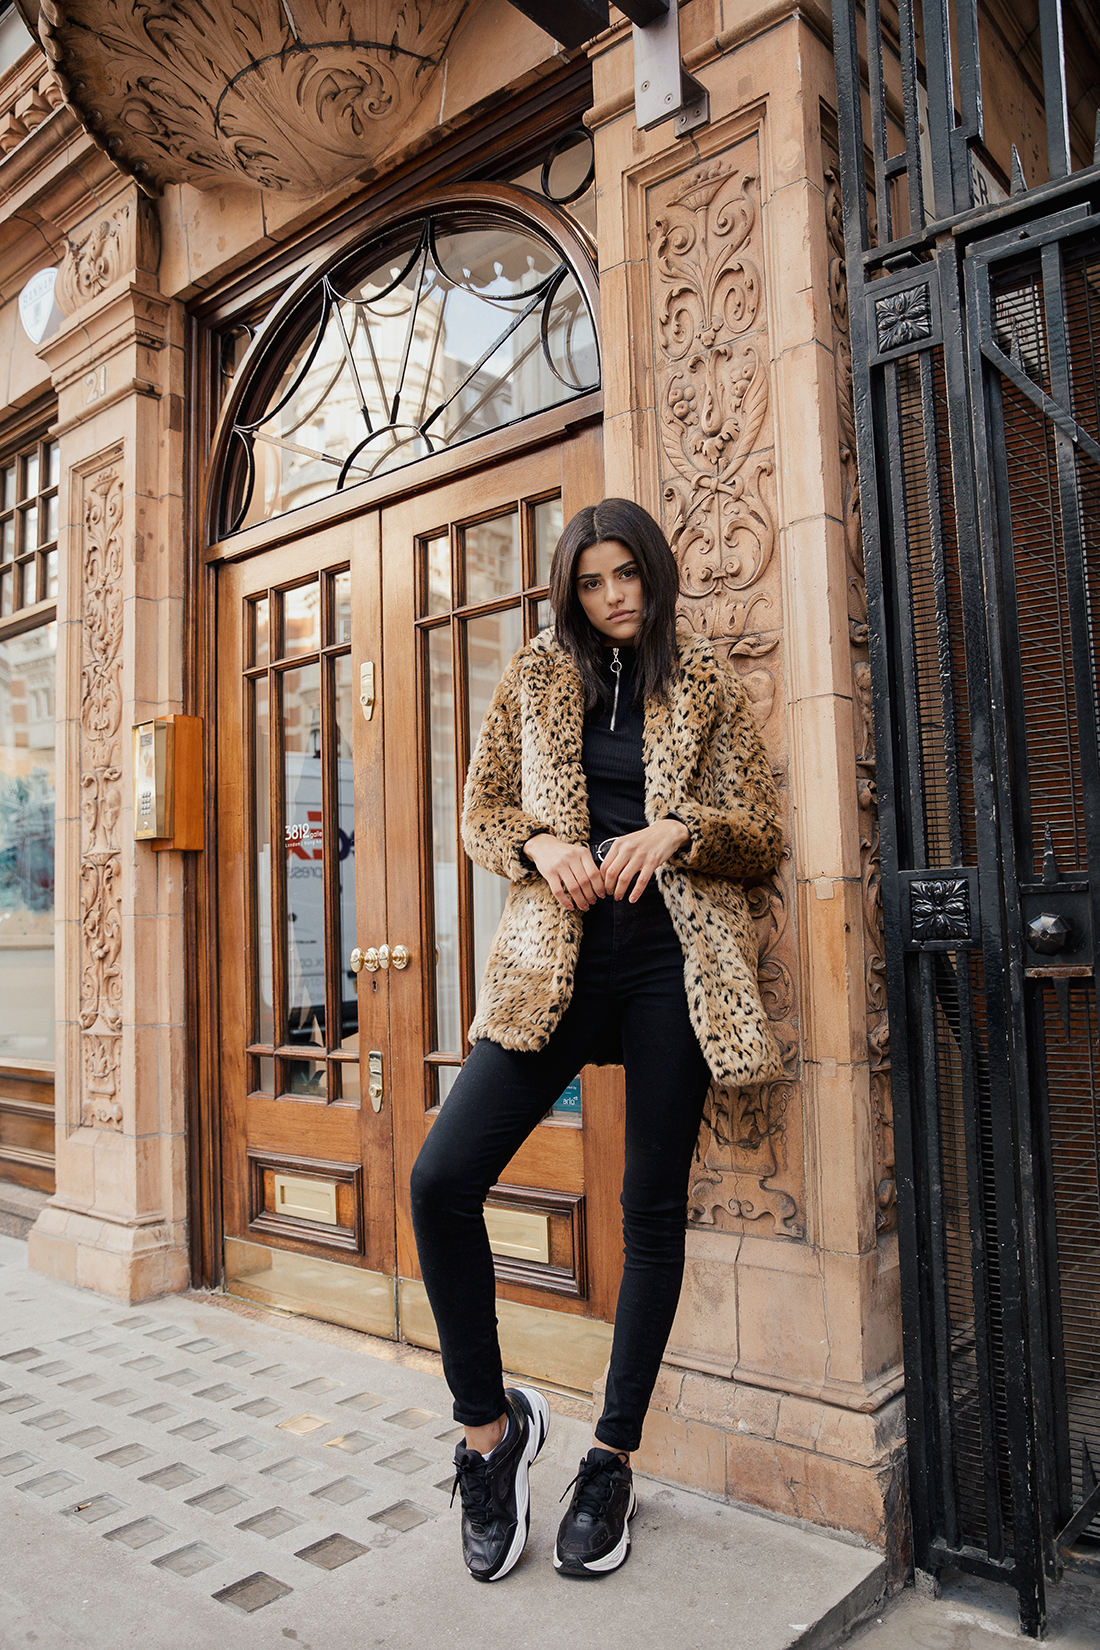 full length fashion image of a black haired model wearing black jeans and a leopard coat leaning against a brown building